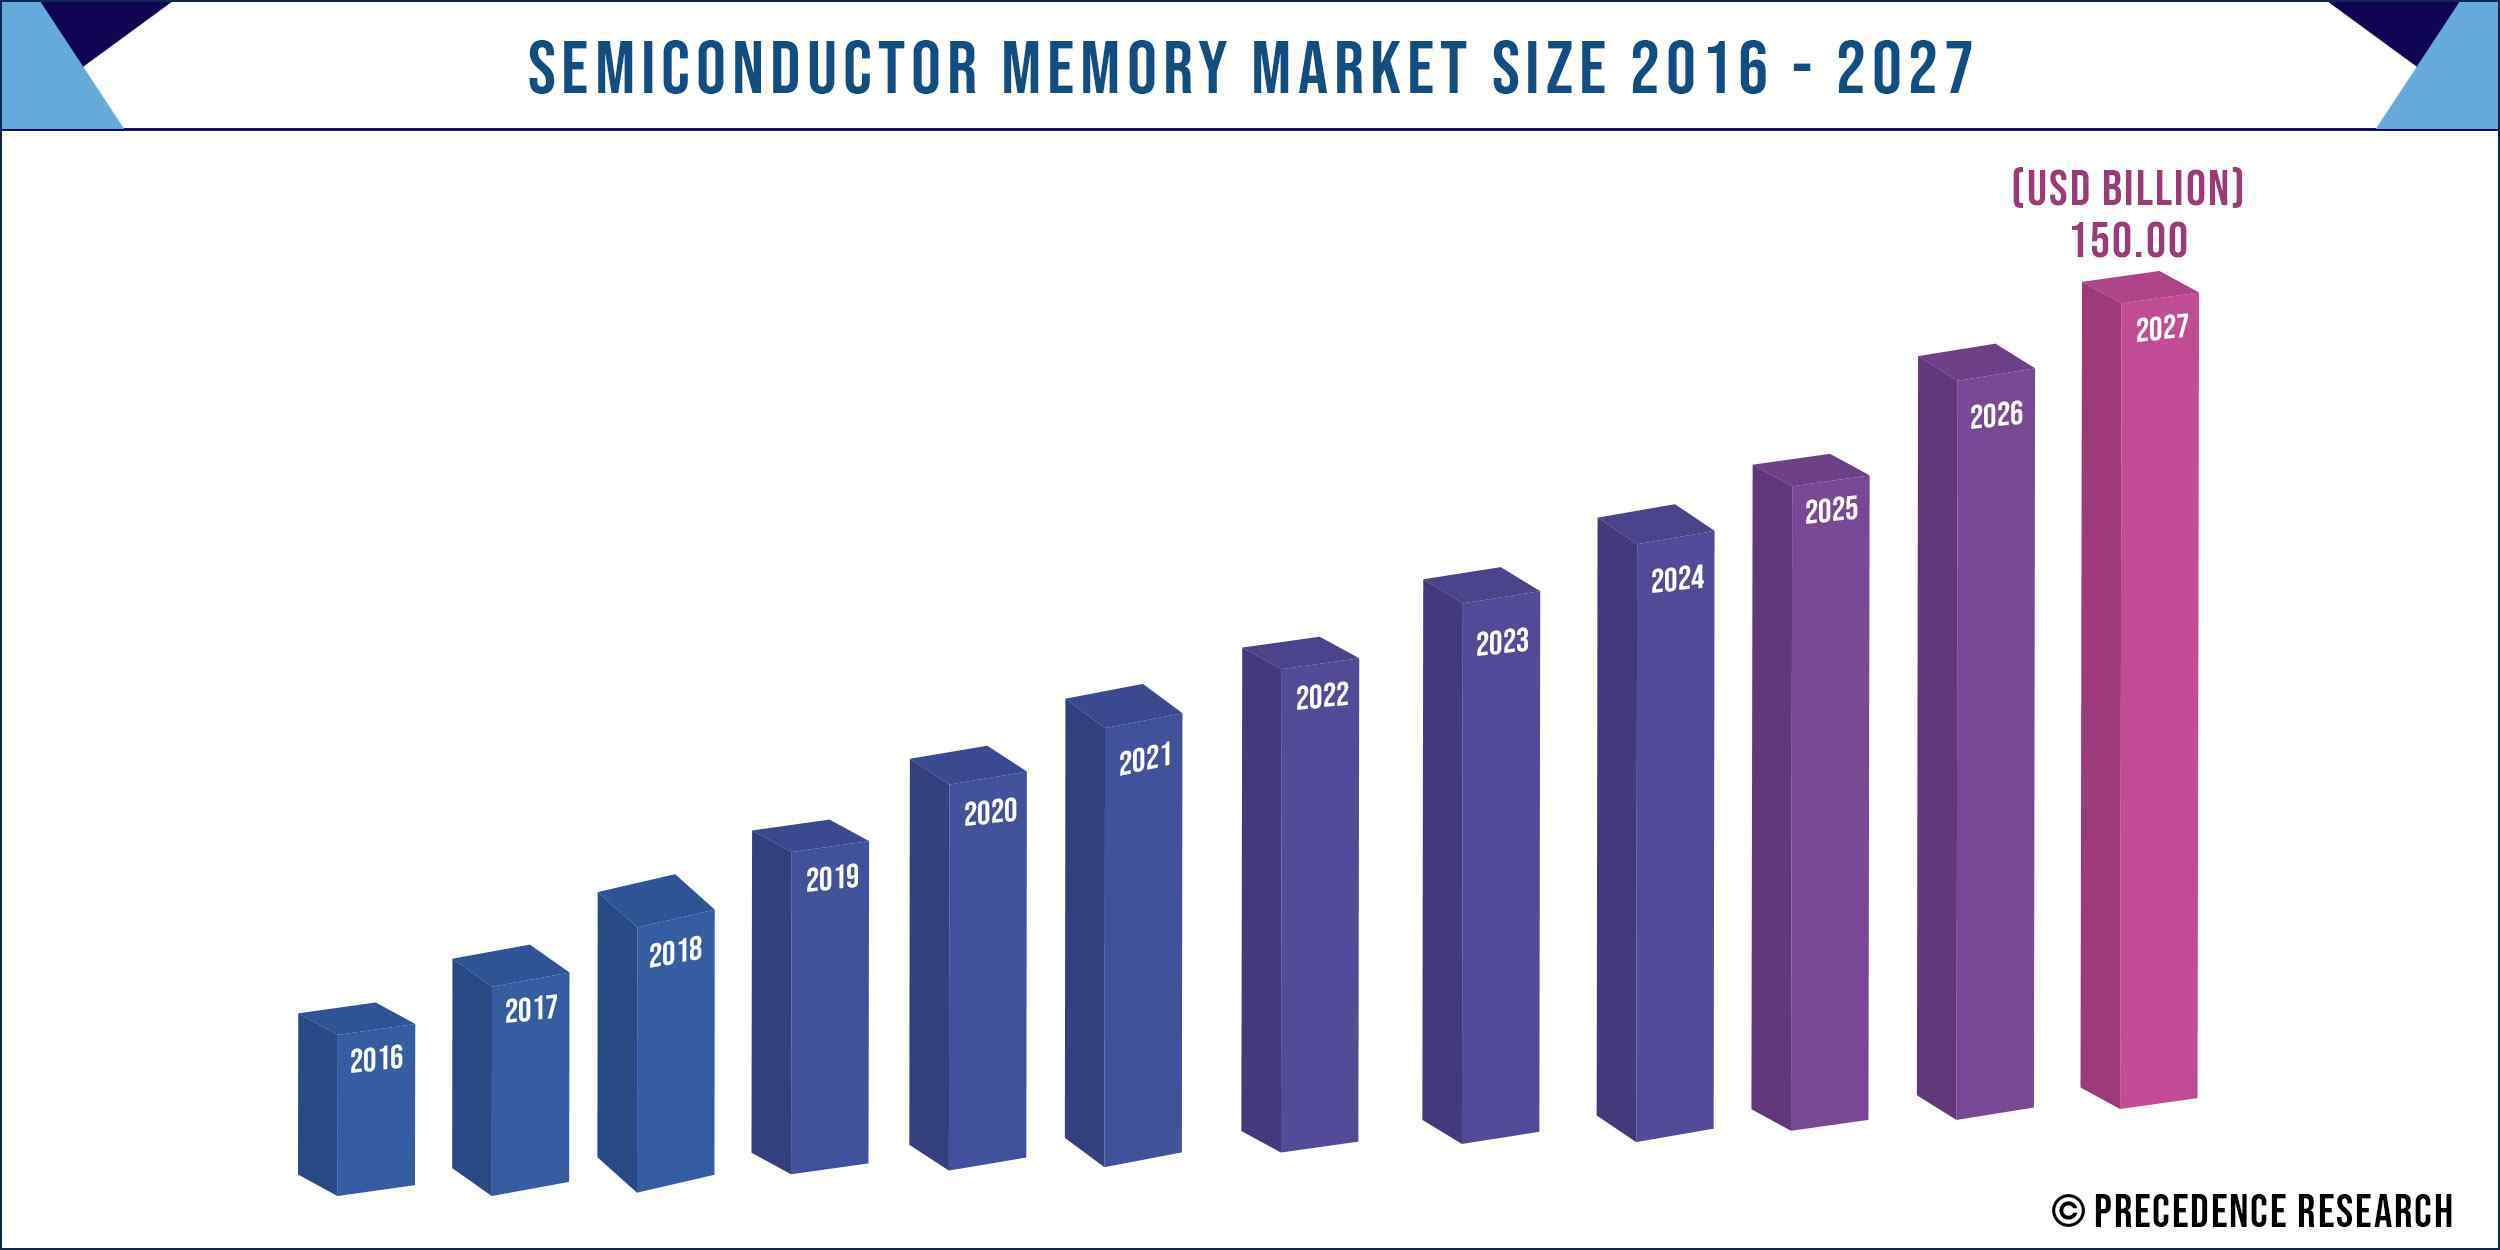 Semiconductor Memory Market Size 2016 to 2027